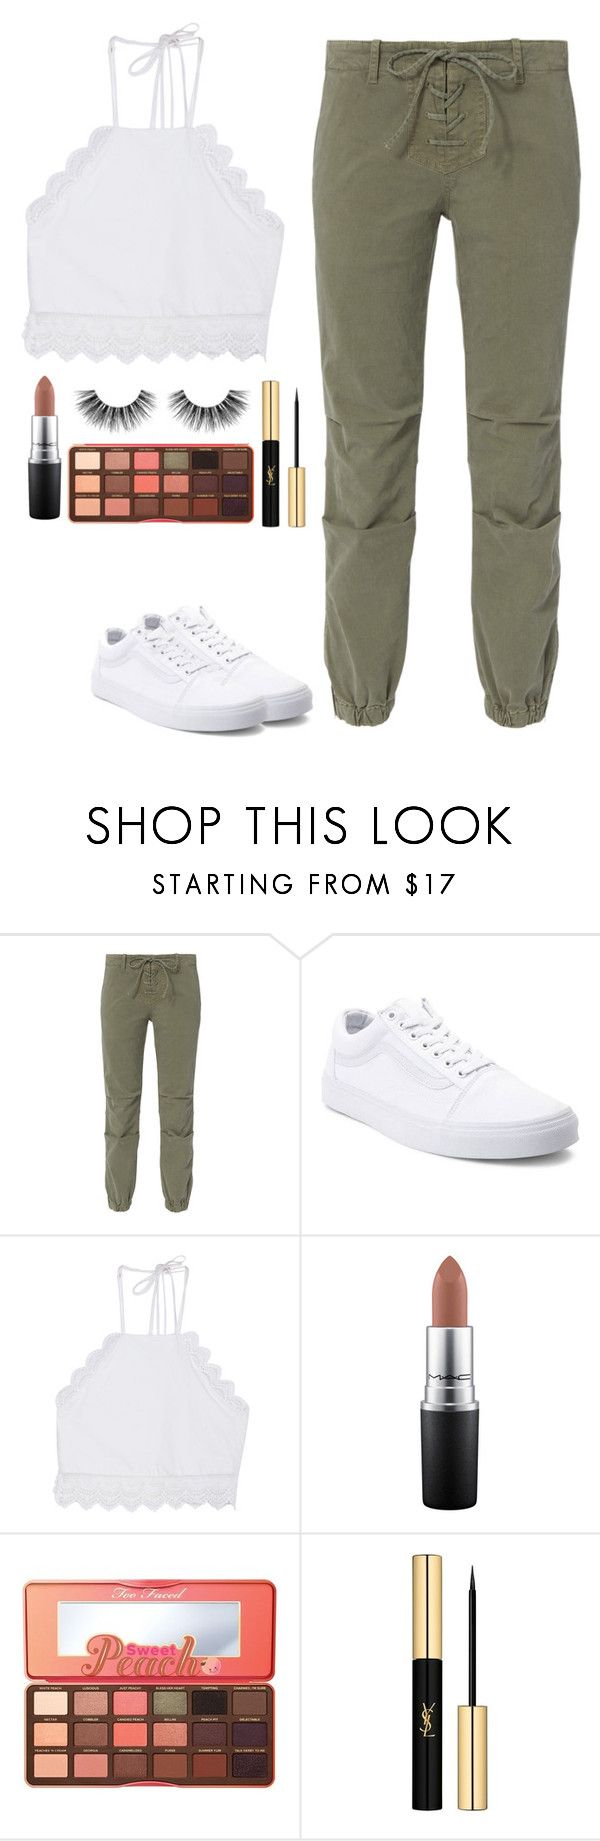 """""""I love it i hate it"""" by arianabut1993 ❤ liked on Polyvore featuring Nili Lotan, Vans, Front Row Shop, MAC Cosmetics, Too Faced Cosmetics, Yves Saint Laurent and Velour Lashes"""